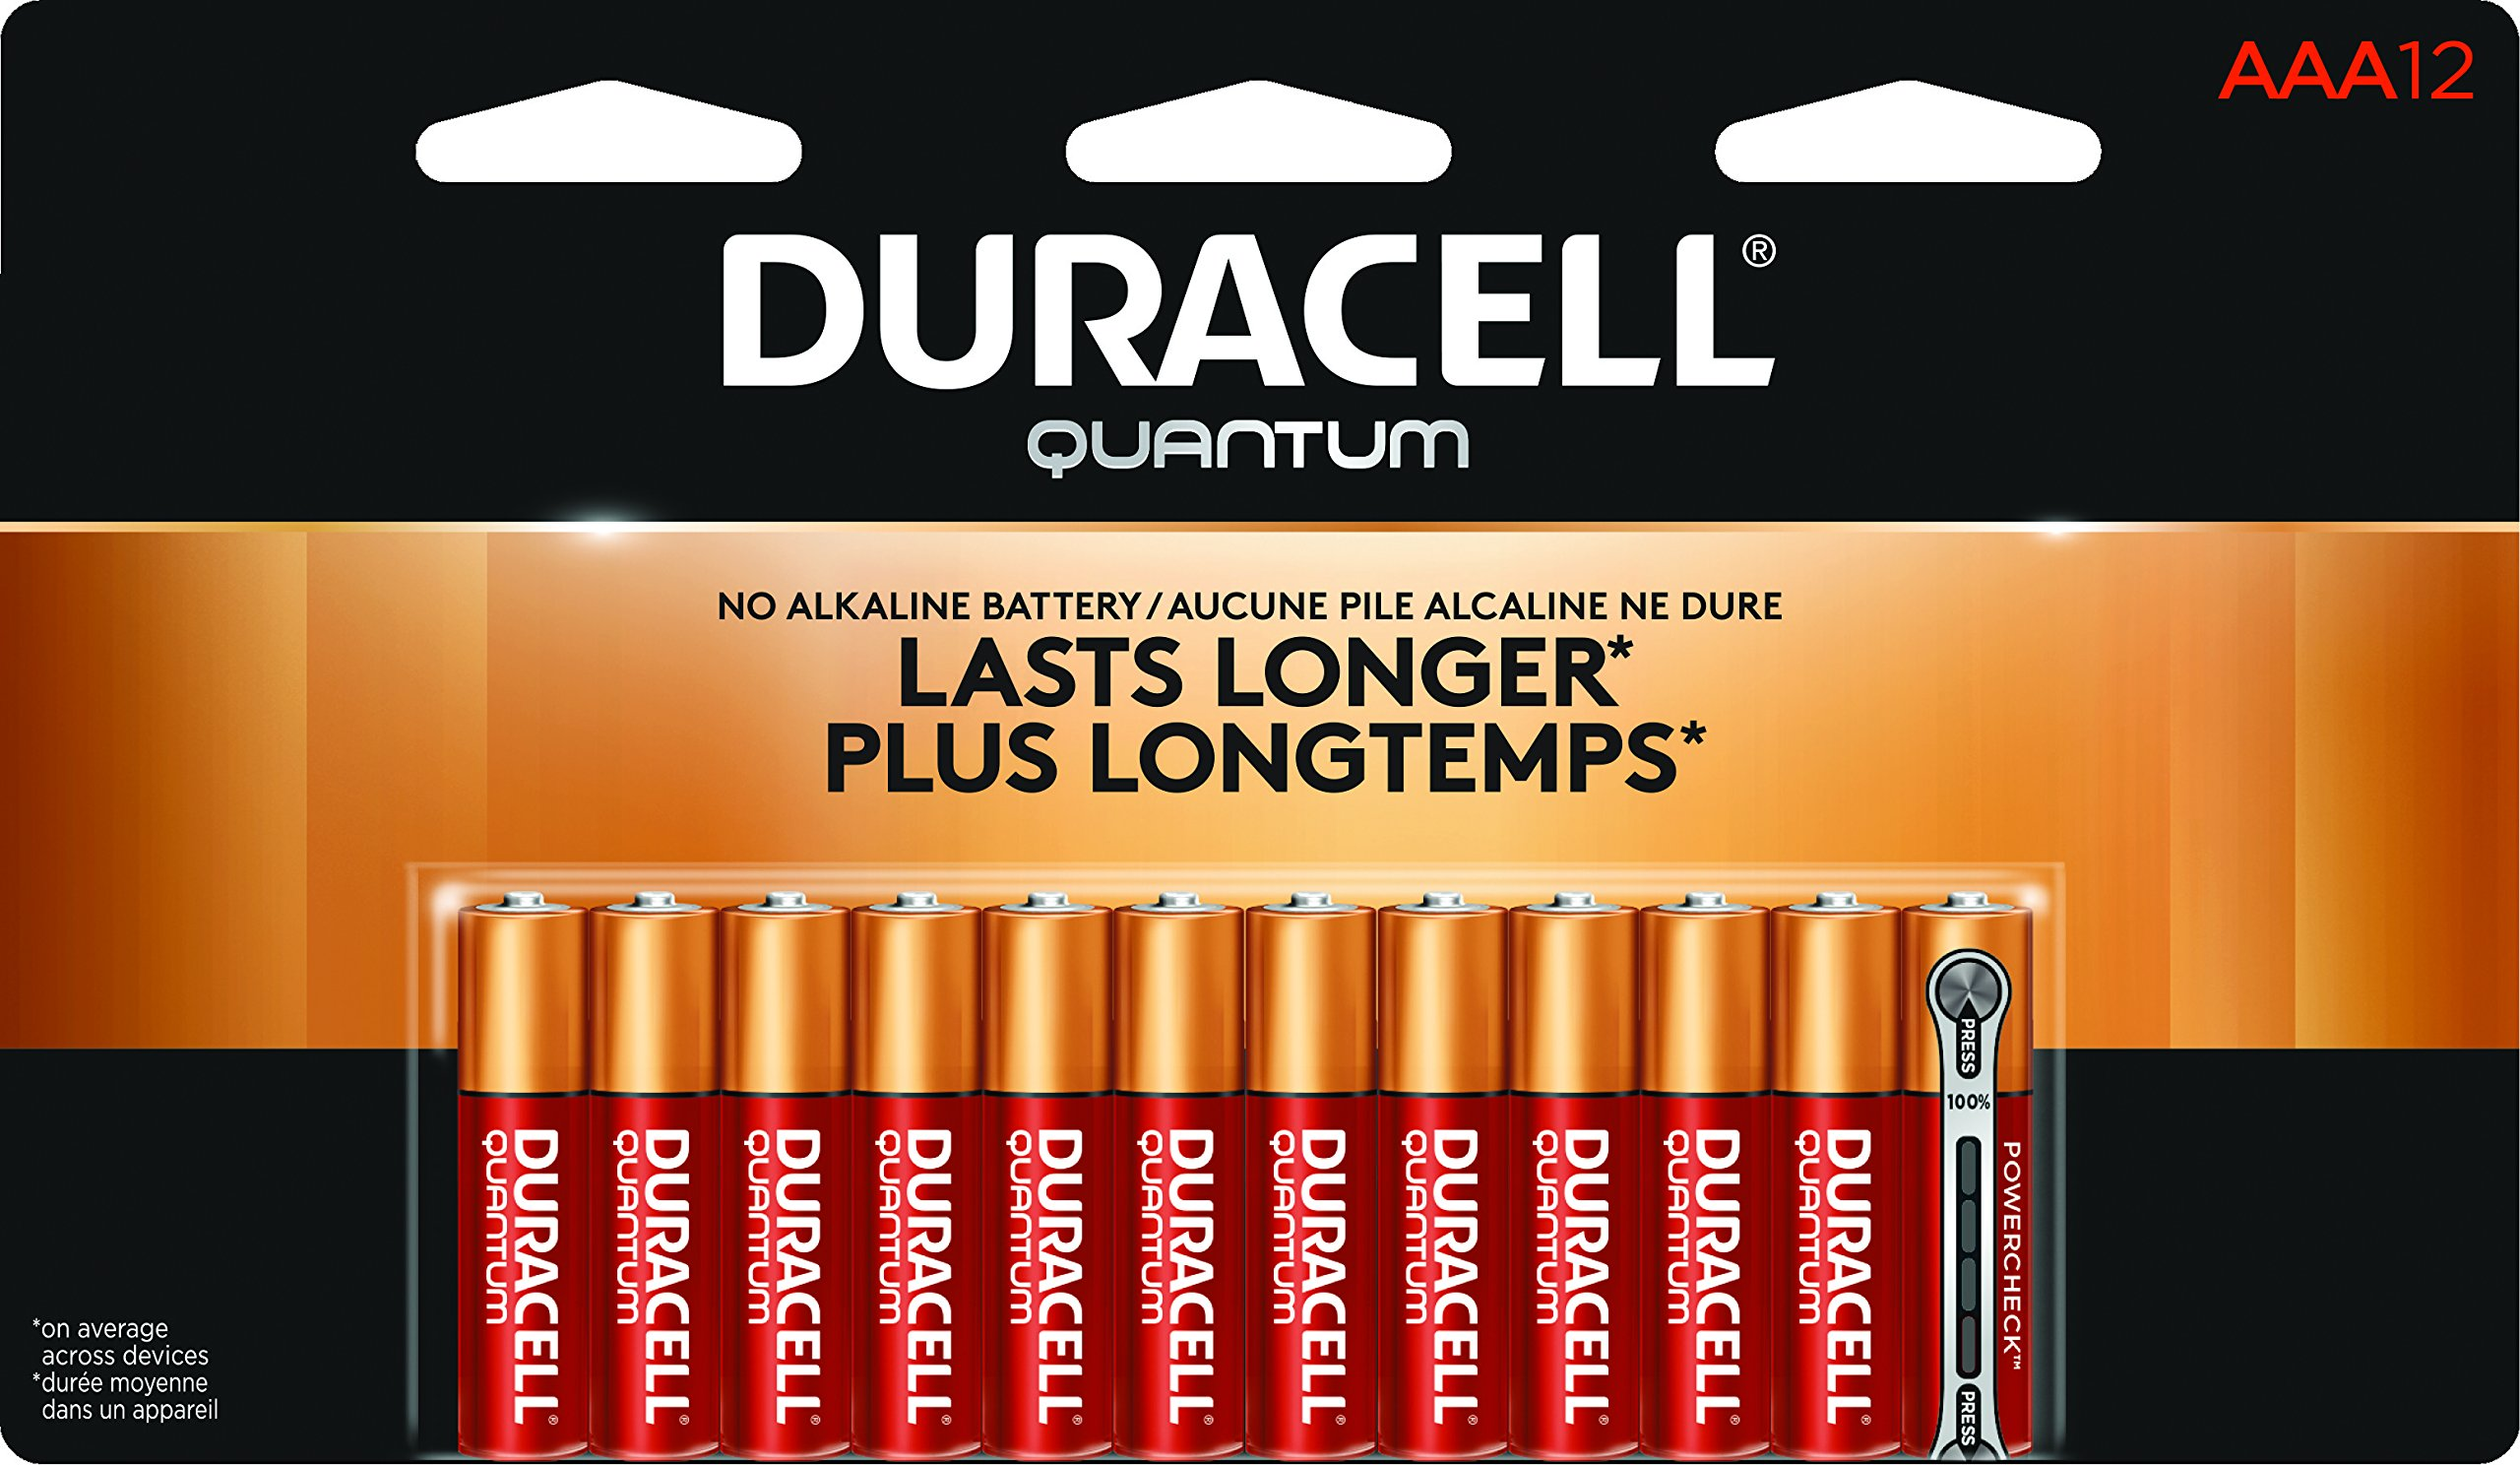 Duracell QU2400B12Z Quantum Alkaline Batteries with Duralock Power Preserve Technology, AAA Size, 1.5V (Pack of 12)